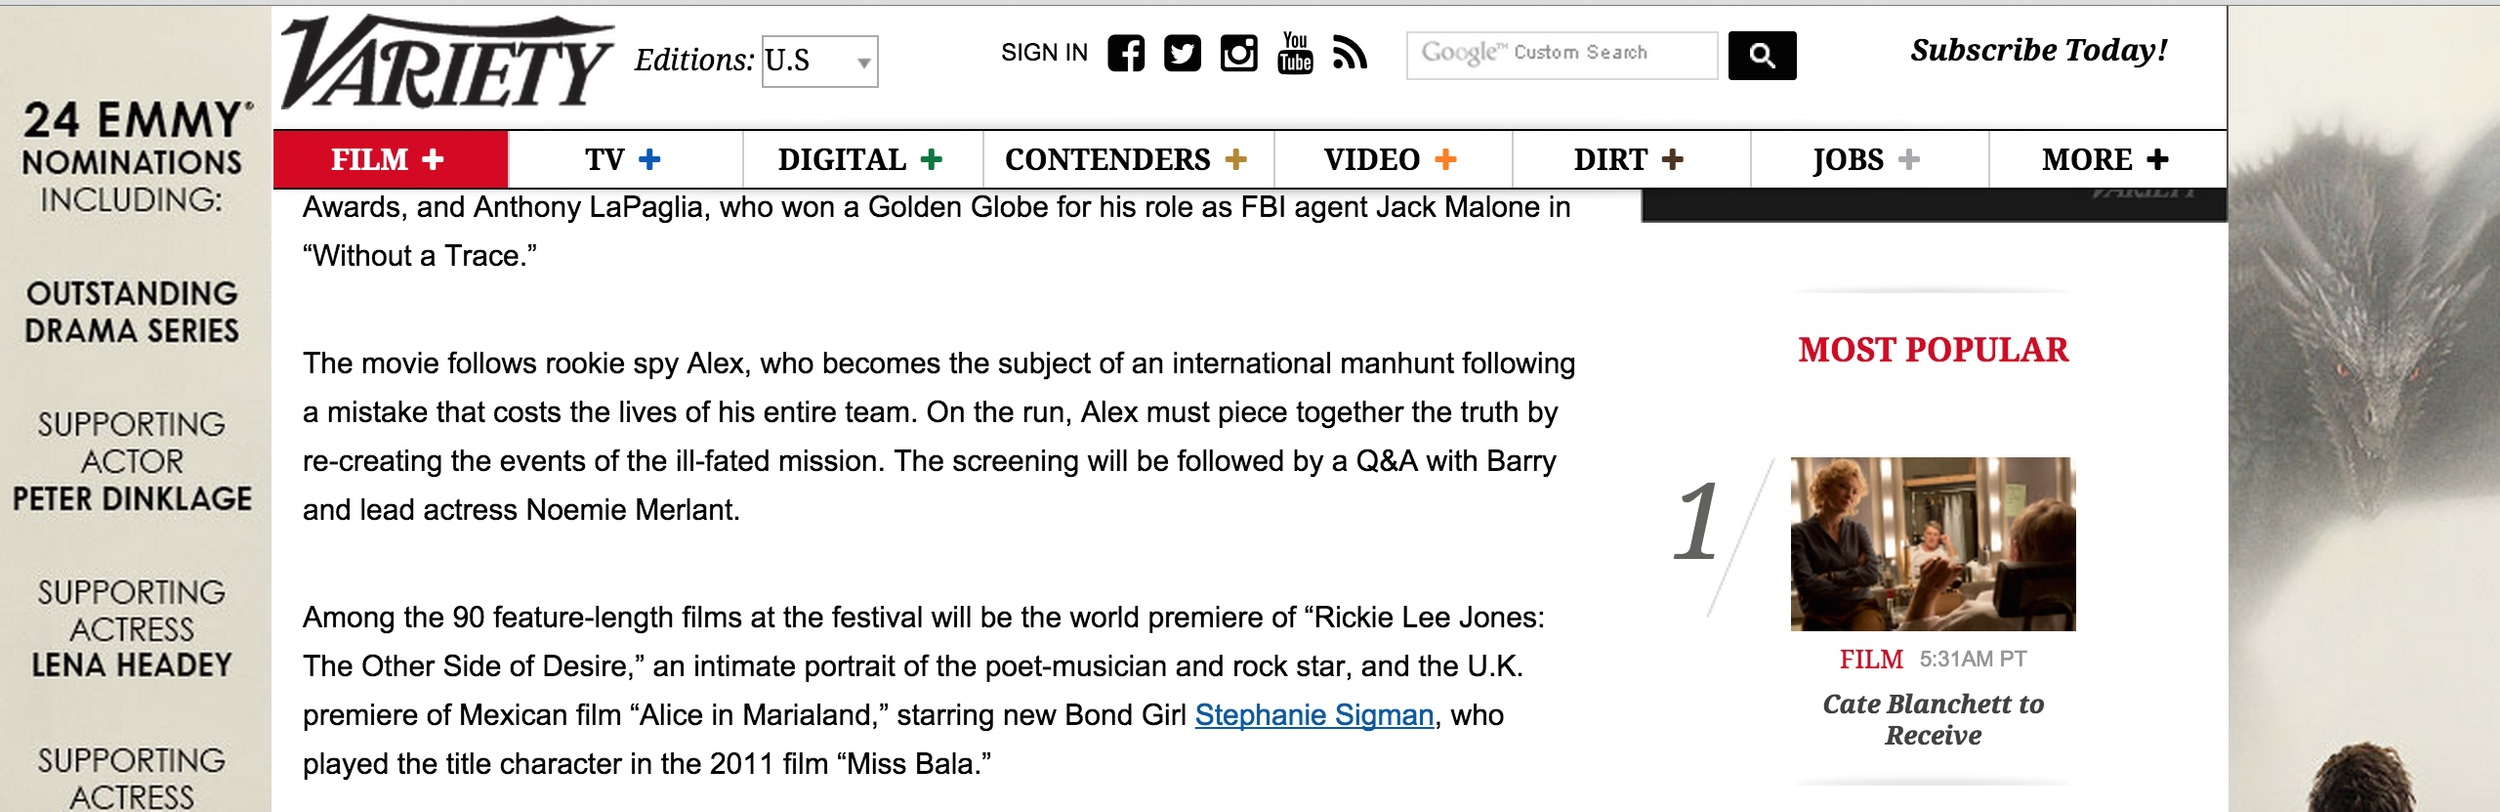 Rickie Lee Jones: The Other Side of Desire mentioned in Variety.